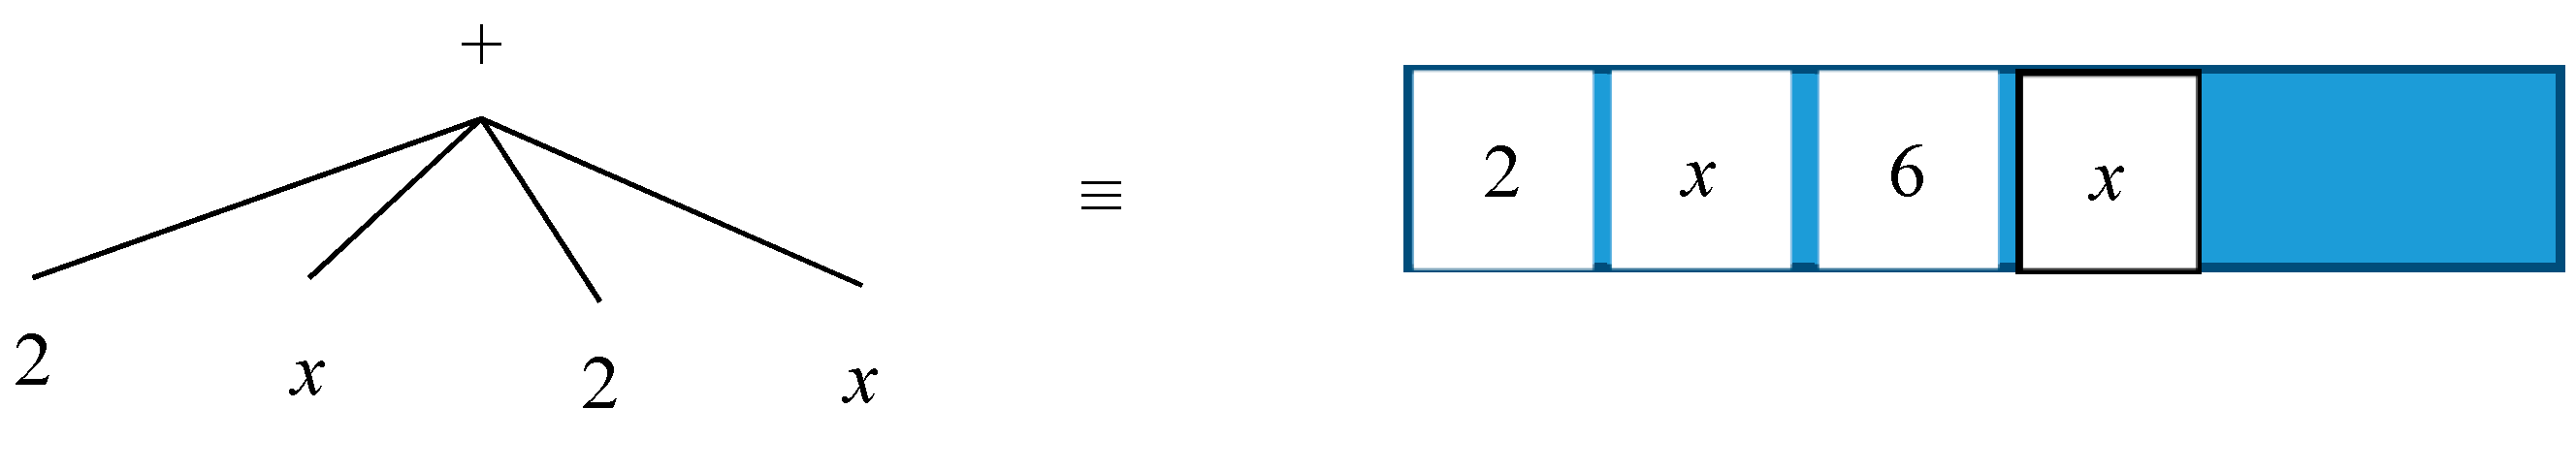 Symmetry | Free Full-Text | A Step-by-Step Solution ... on exponents in numerical form, linear form, numbers in symbol form, standard form, logarithmic form, general form, geometric form, expanded form, polar form, line form, radical form, log form, slope-intercept form, parametric form, 10 in exponent form, parabola form,